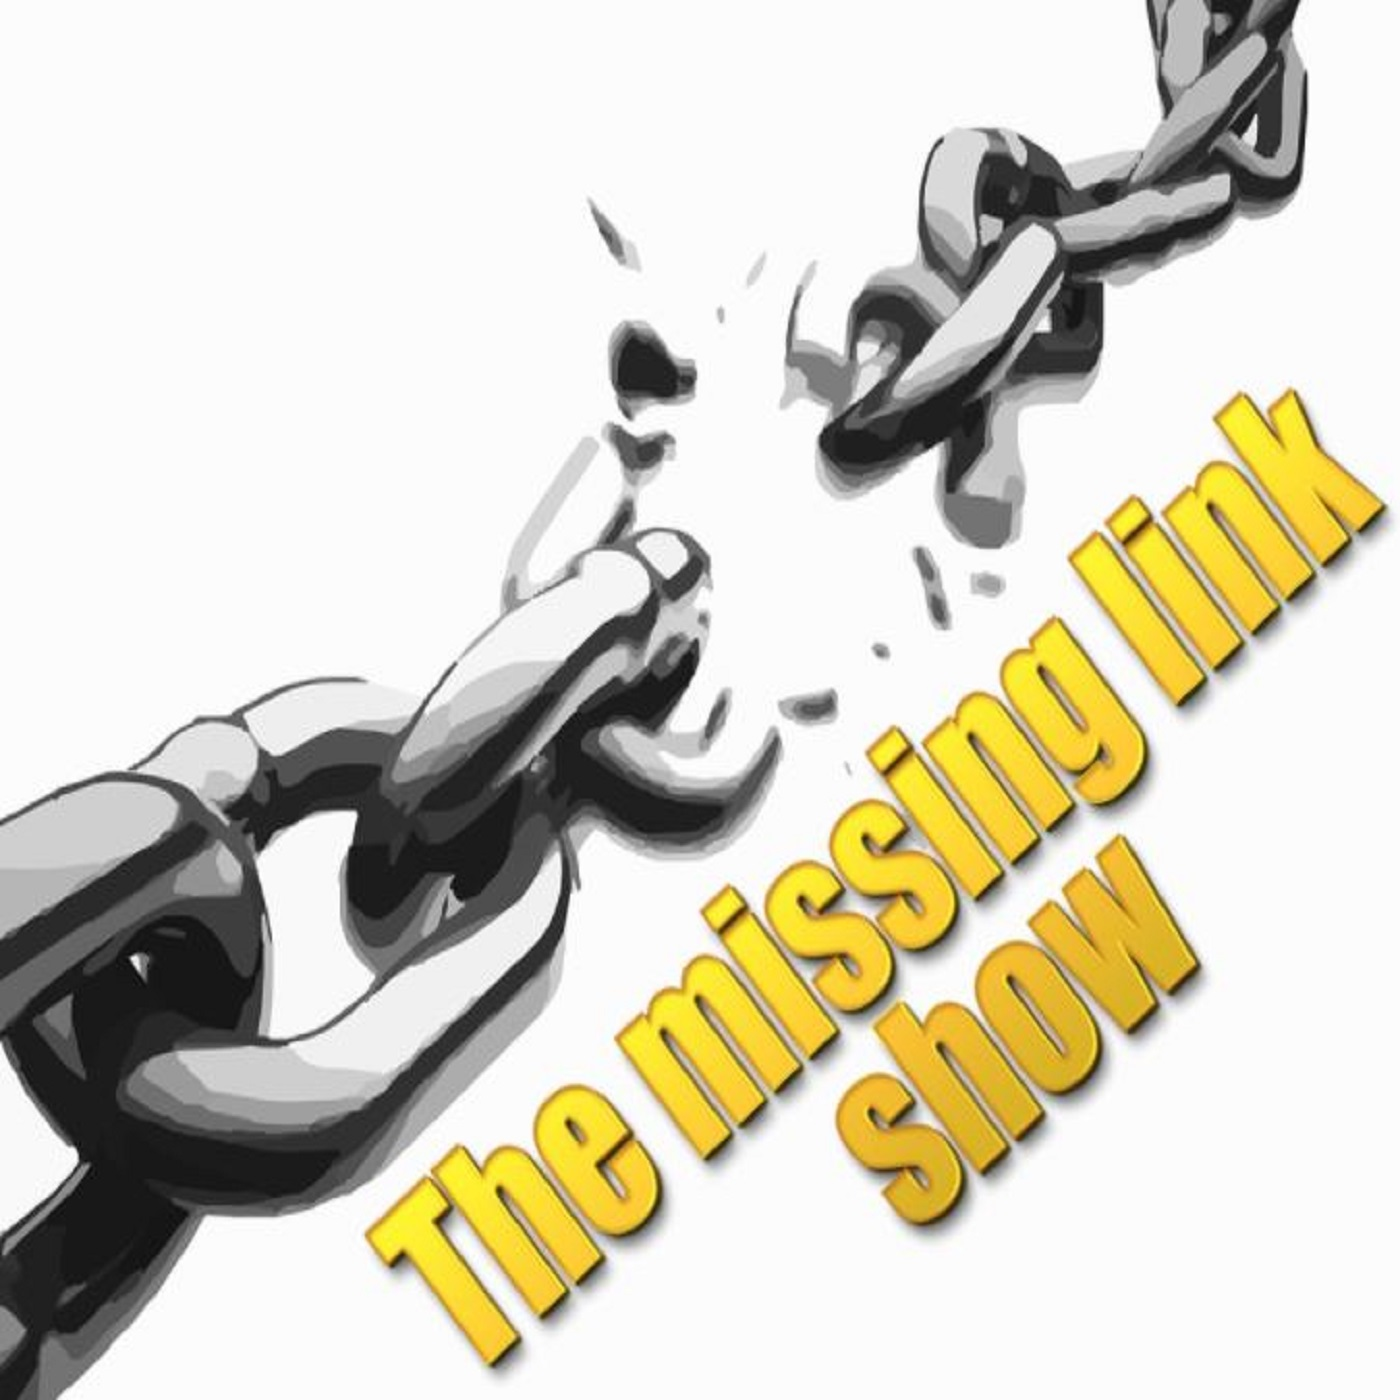 The missing link show